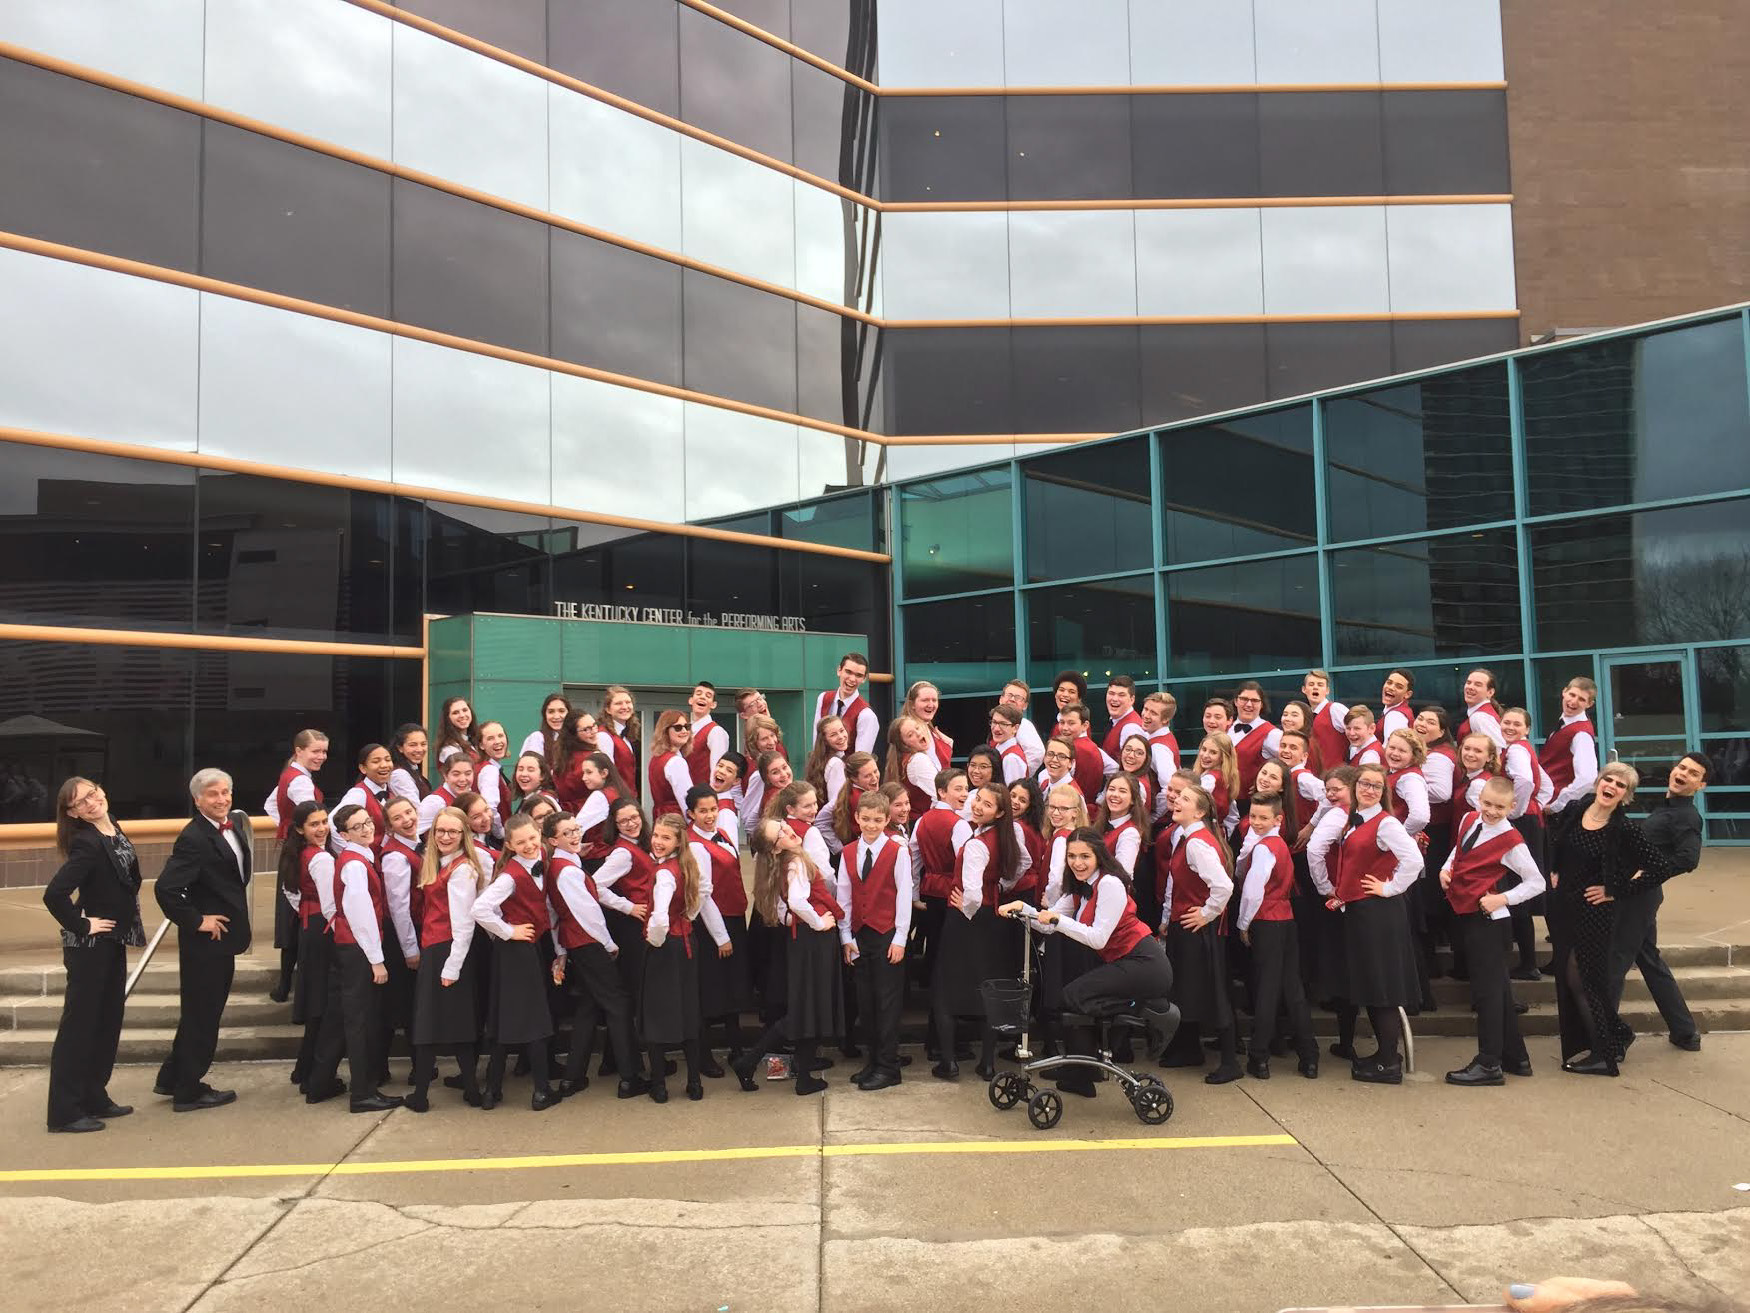 ACDA Louisville Pictures_Page_067.jpg